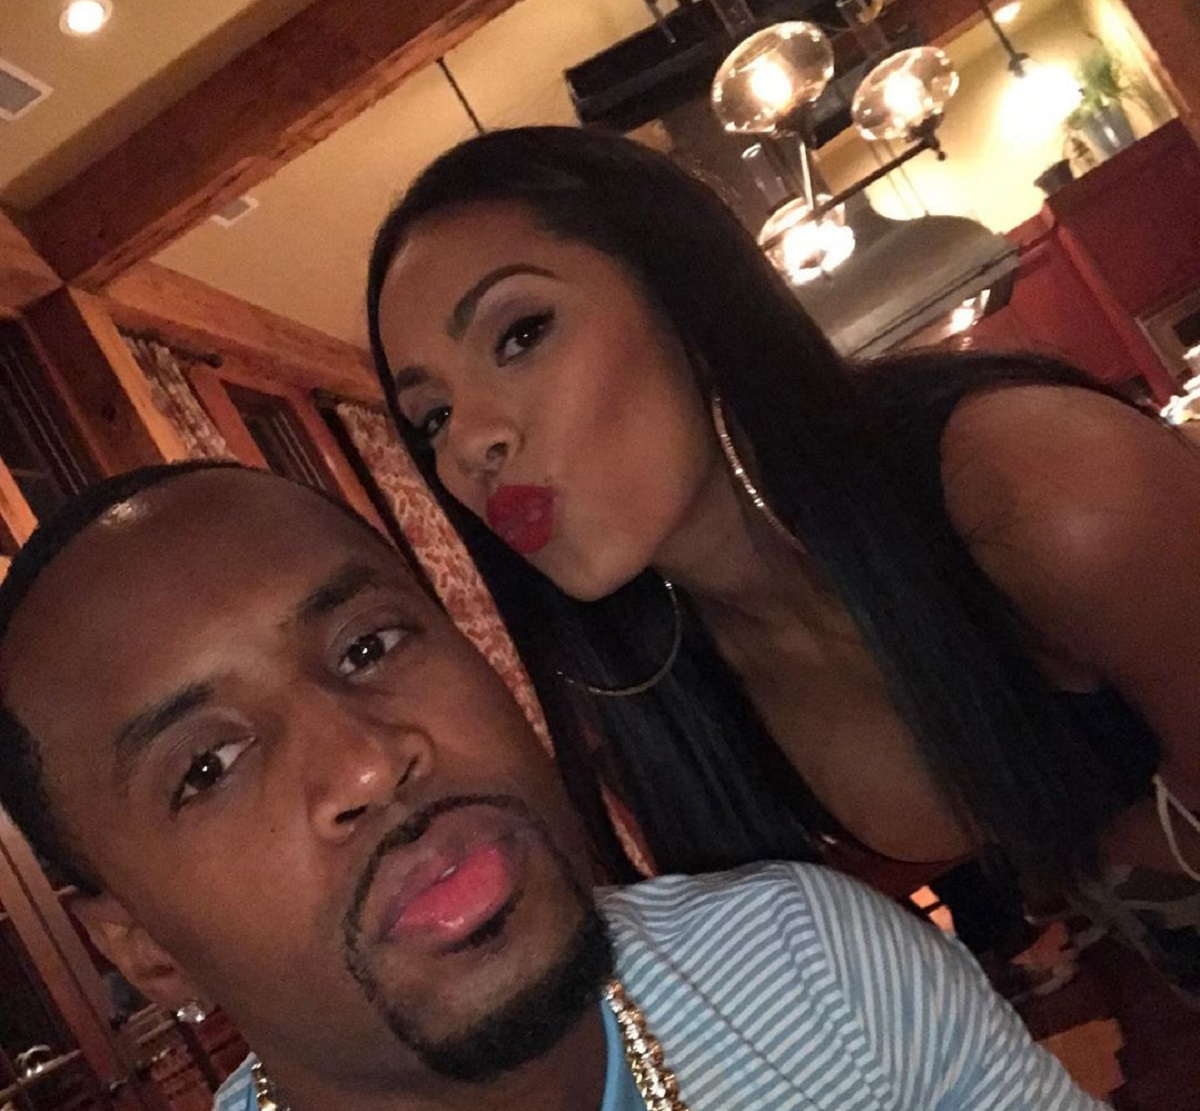 Erica Mena And Safaree Break The Internet With These NSFW Photos - See Them Here And Enjoy Erica's Jaw Dropping Curves - Fans Exclaim: 'So Trashy!'